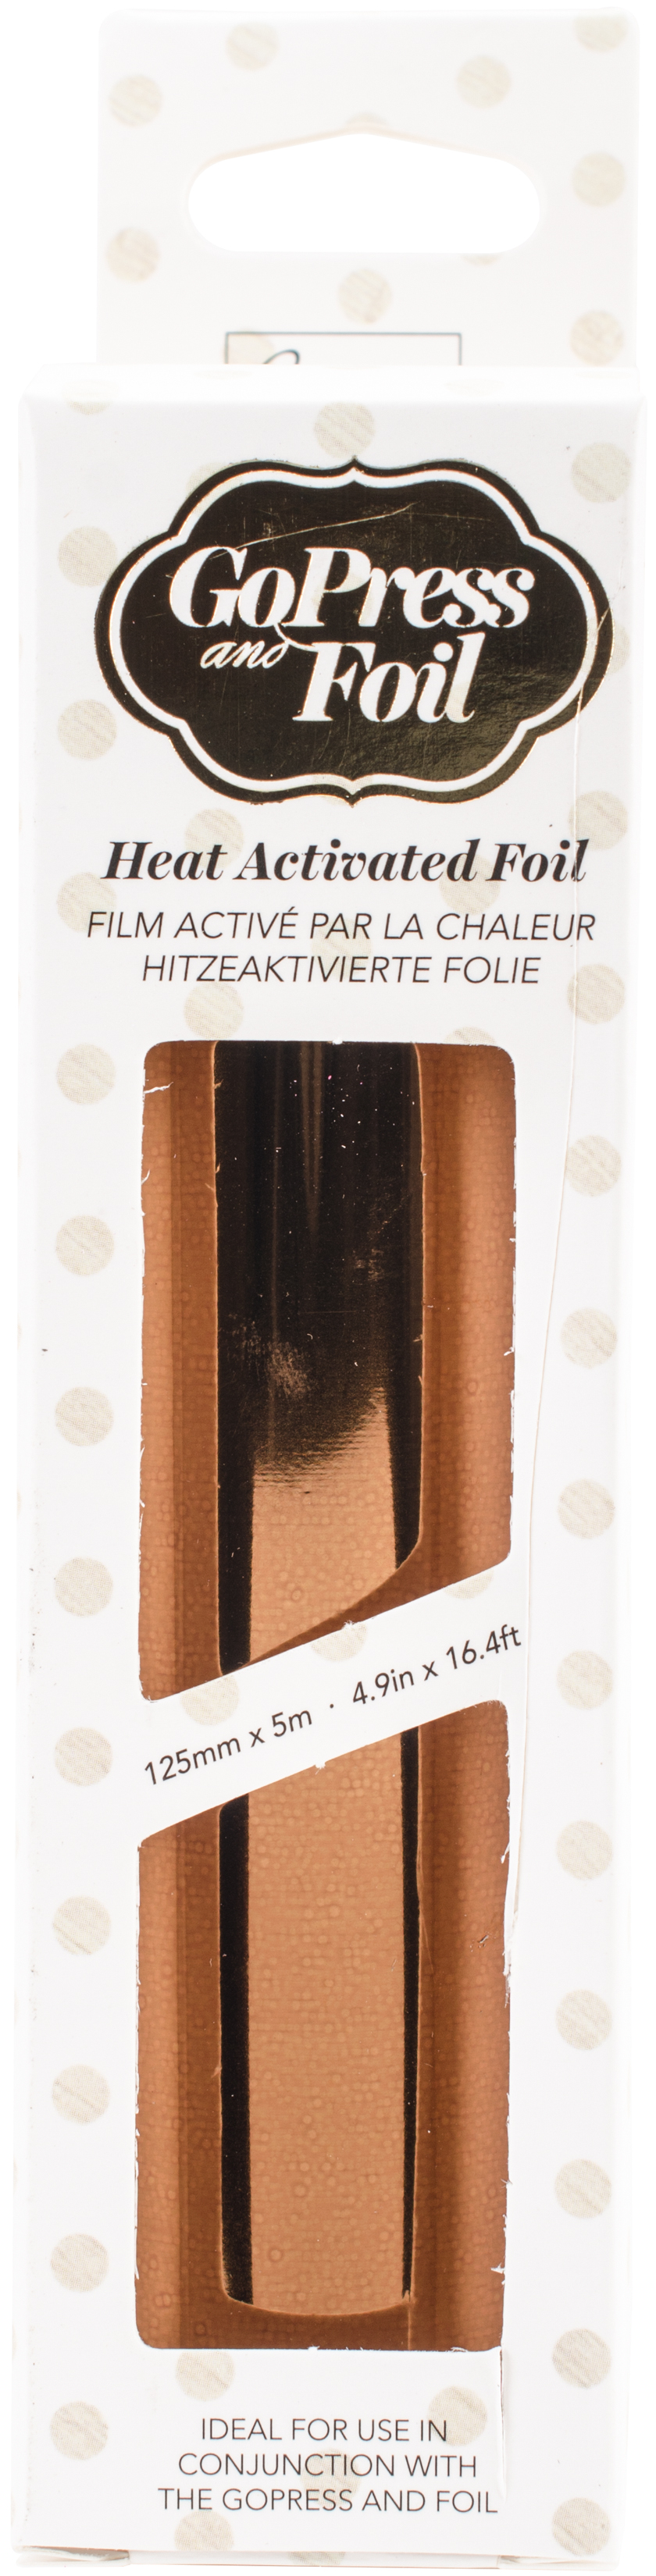 Couture Creations Foil 5X16.4'-Chocolate Copper - Iridescent Finish